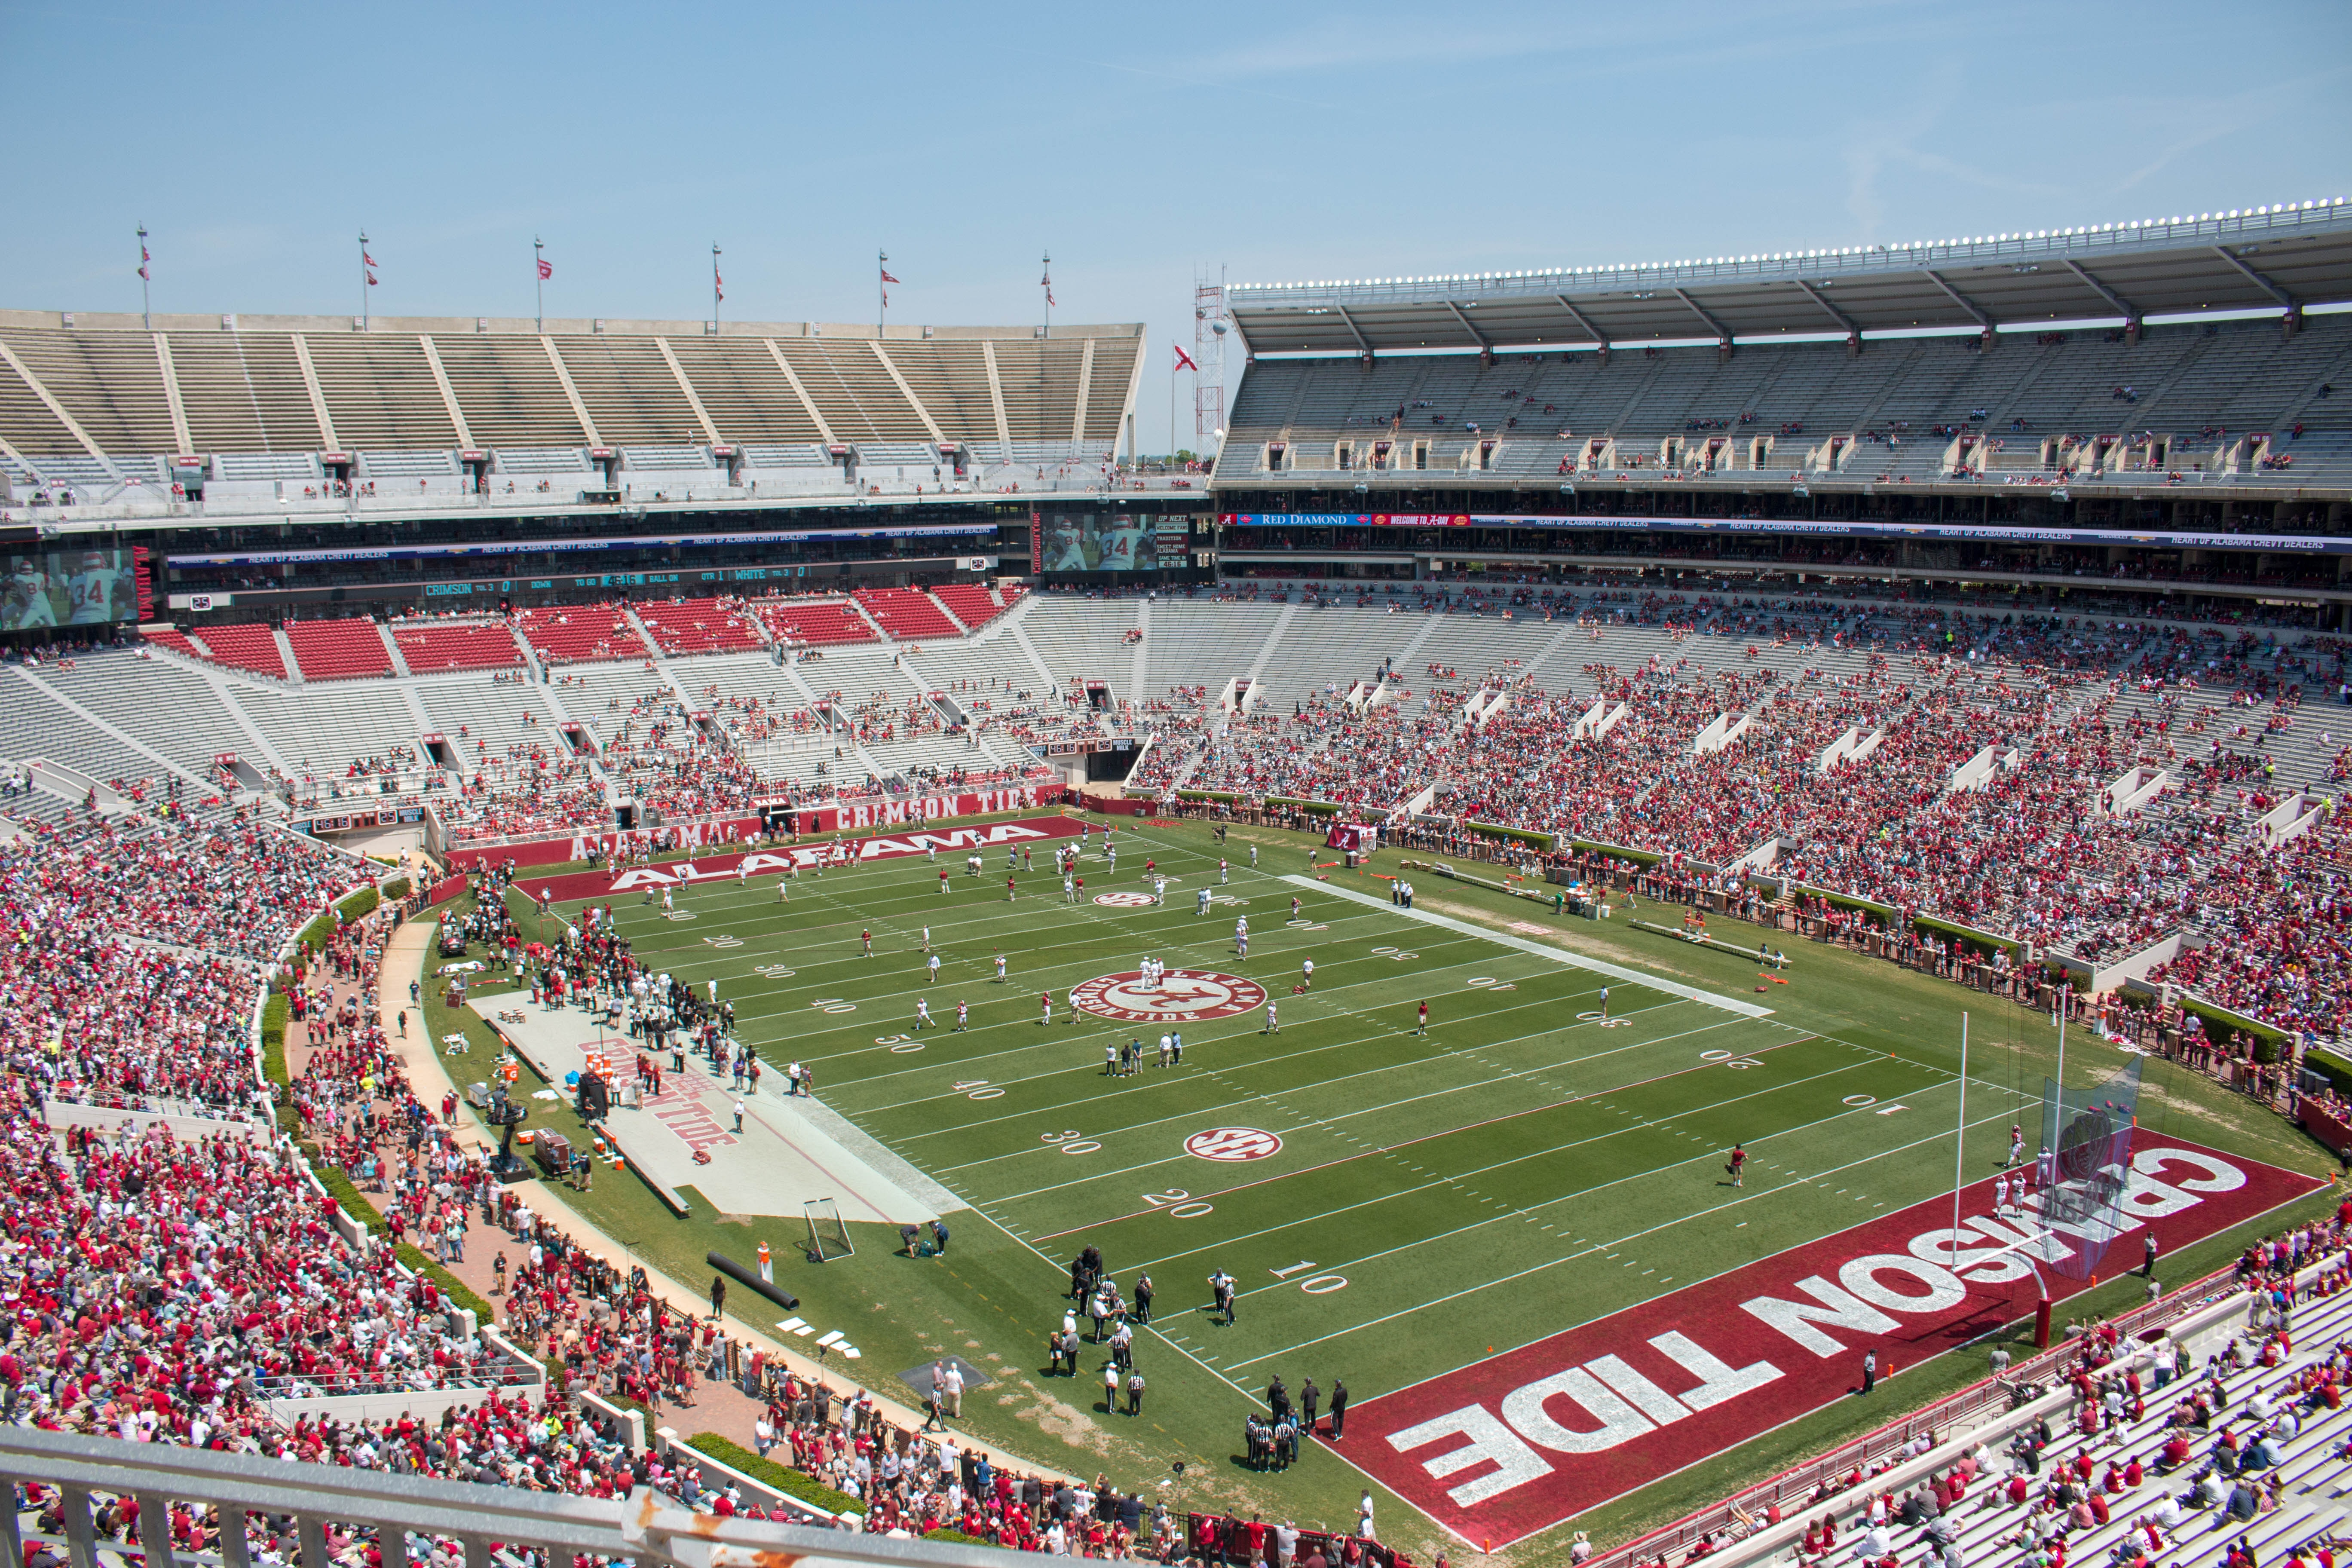 A university football field on game day with the stands filled with fans